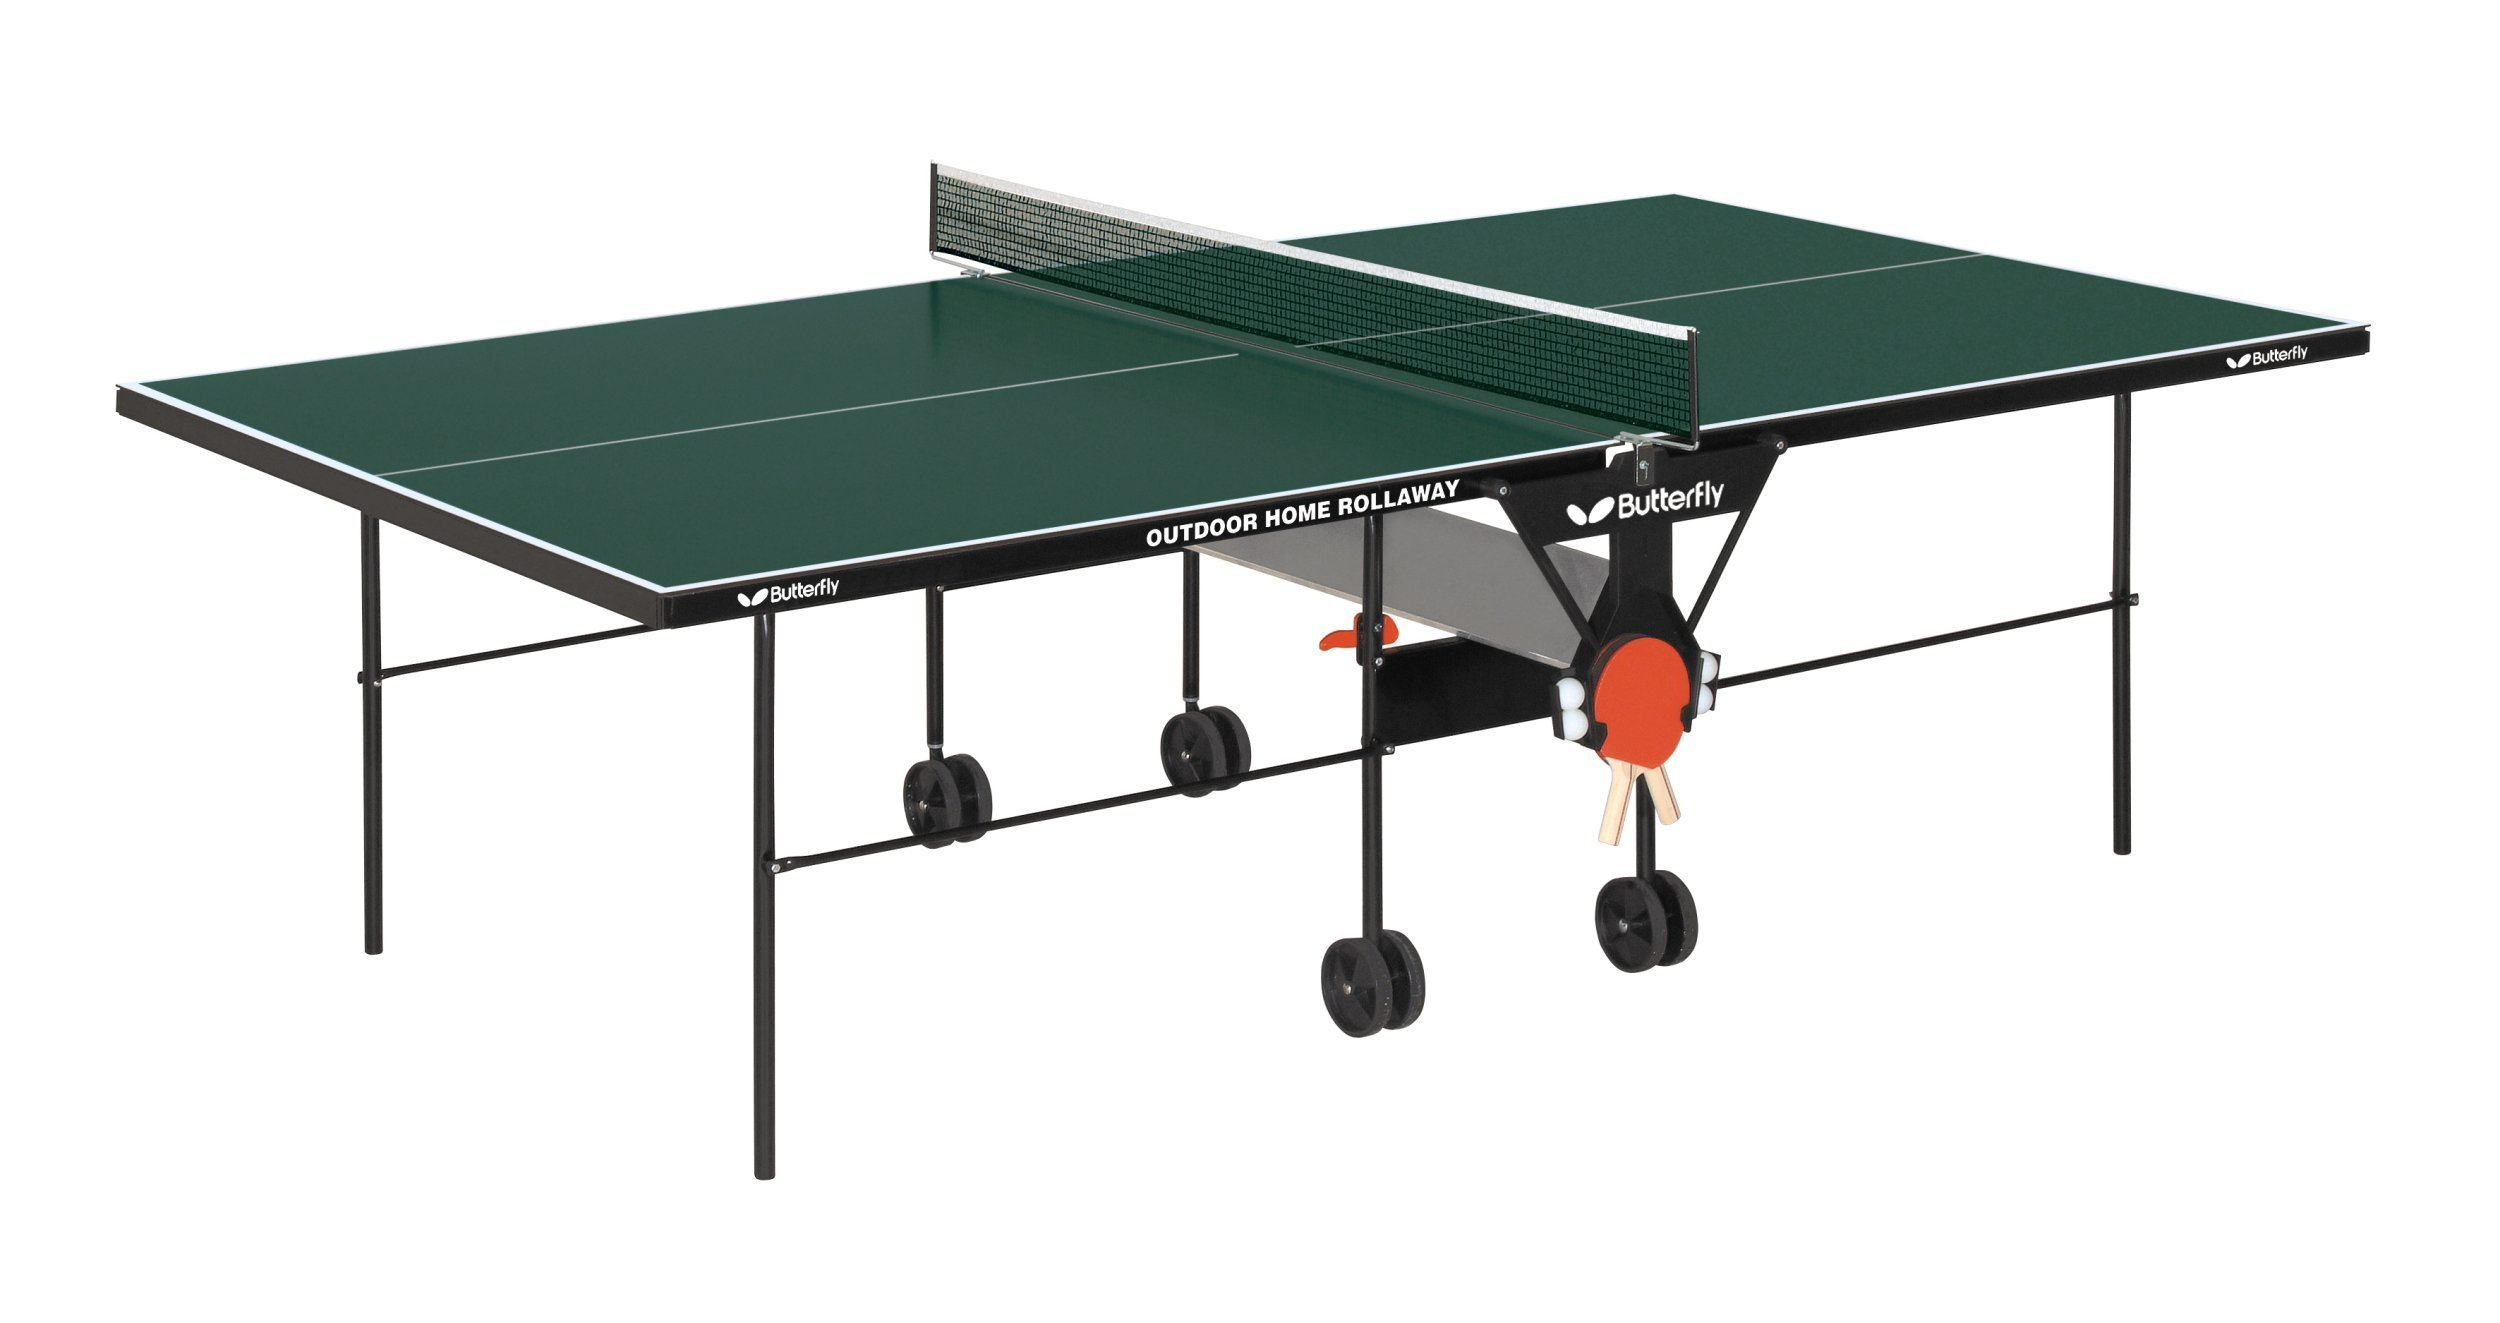 Butterfly Home Rollaway Indoor/Outdoor Table Tennis Table